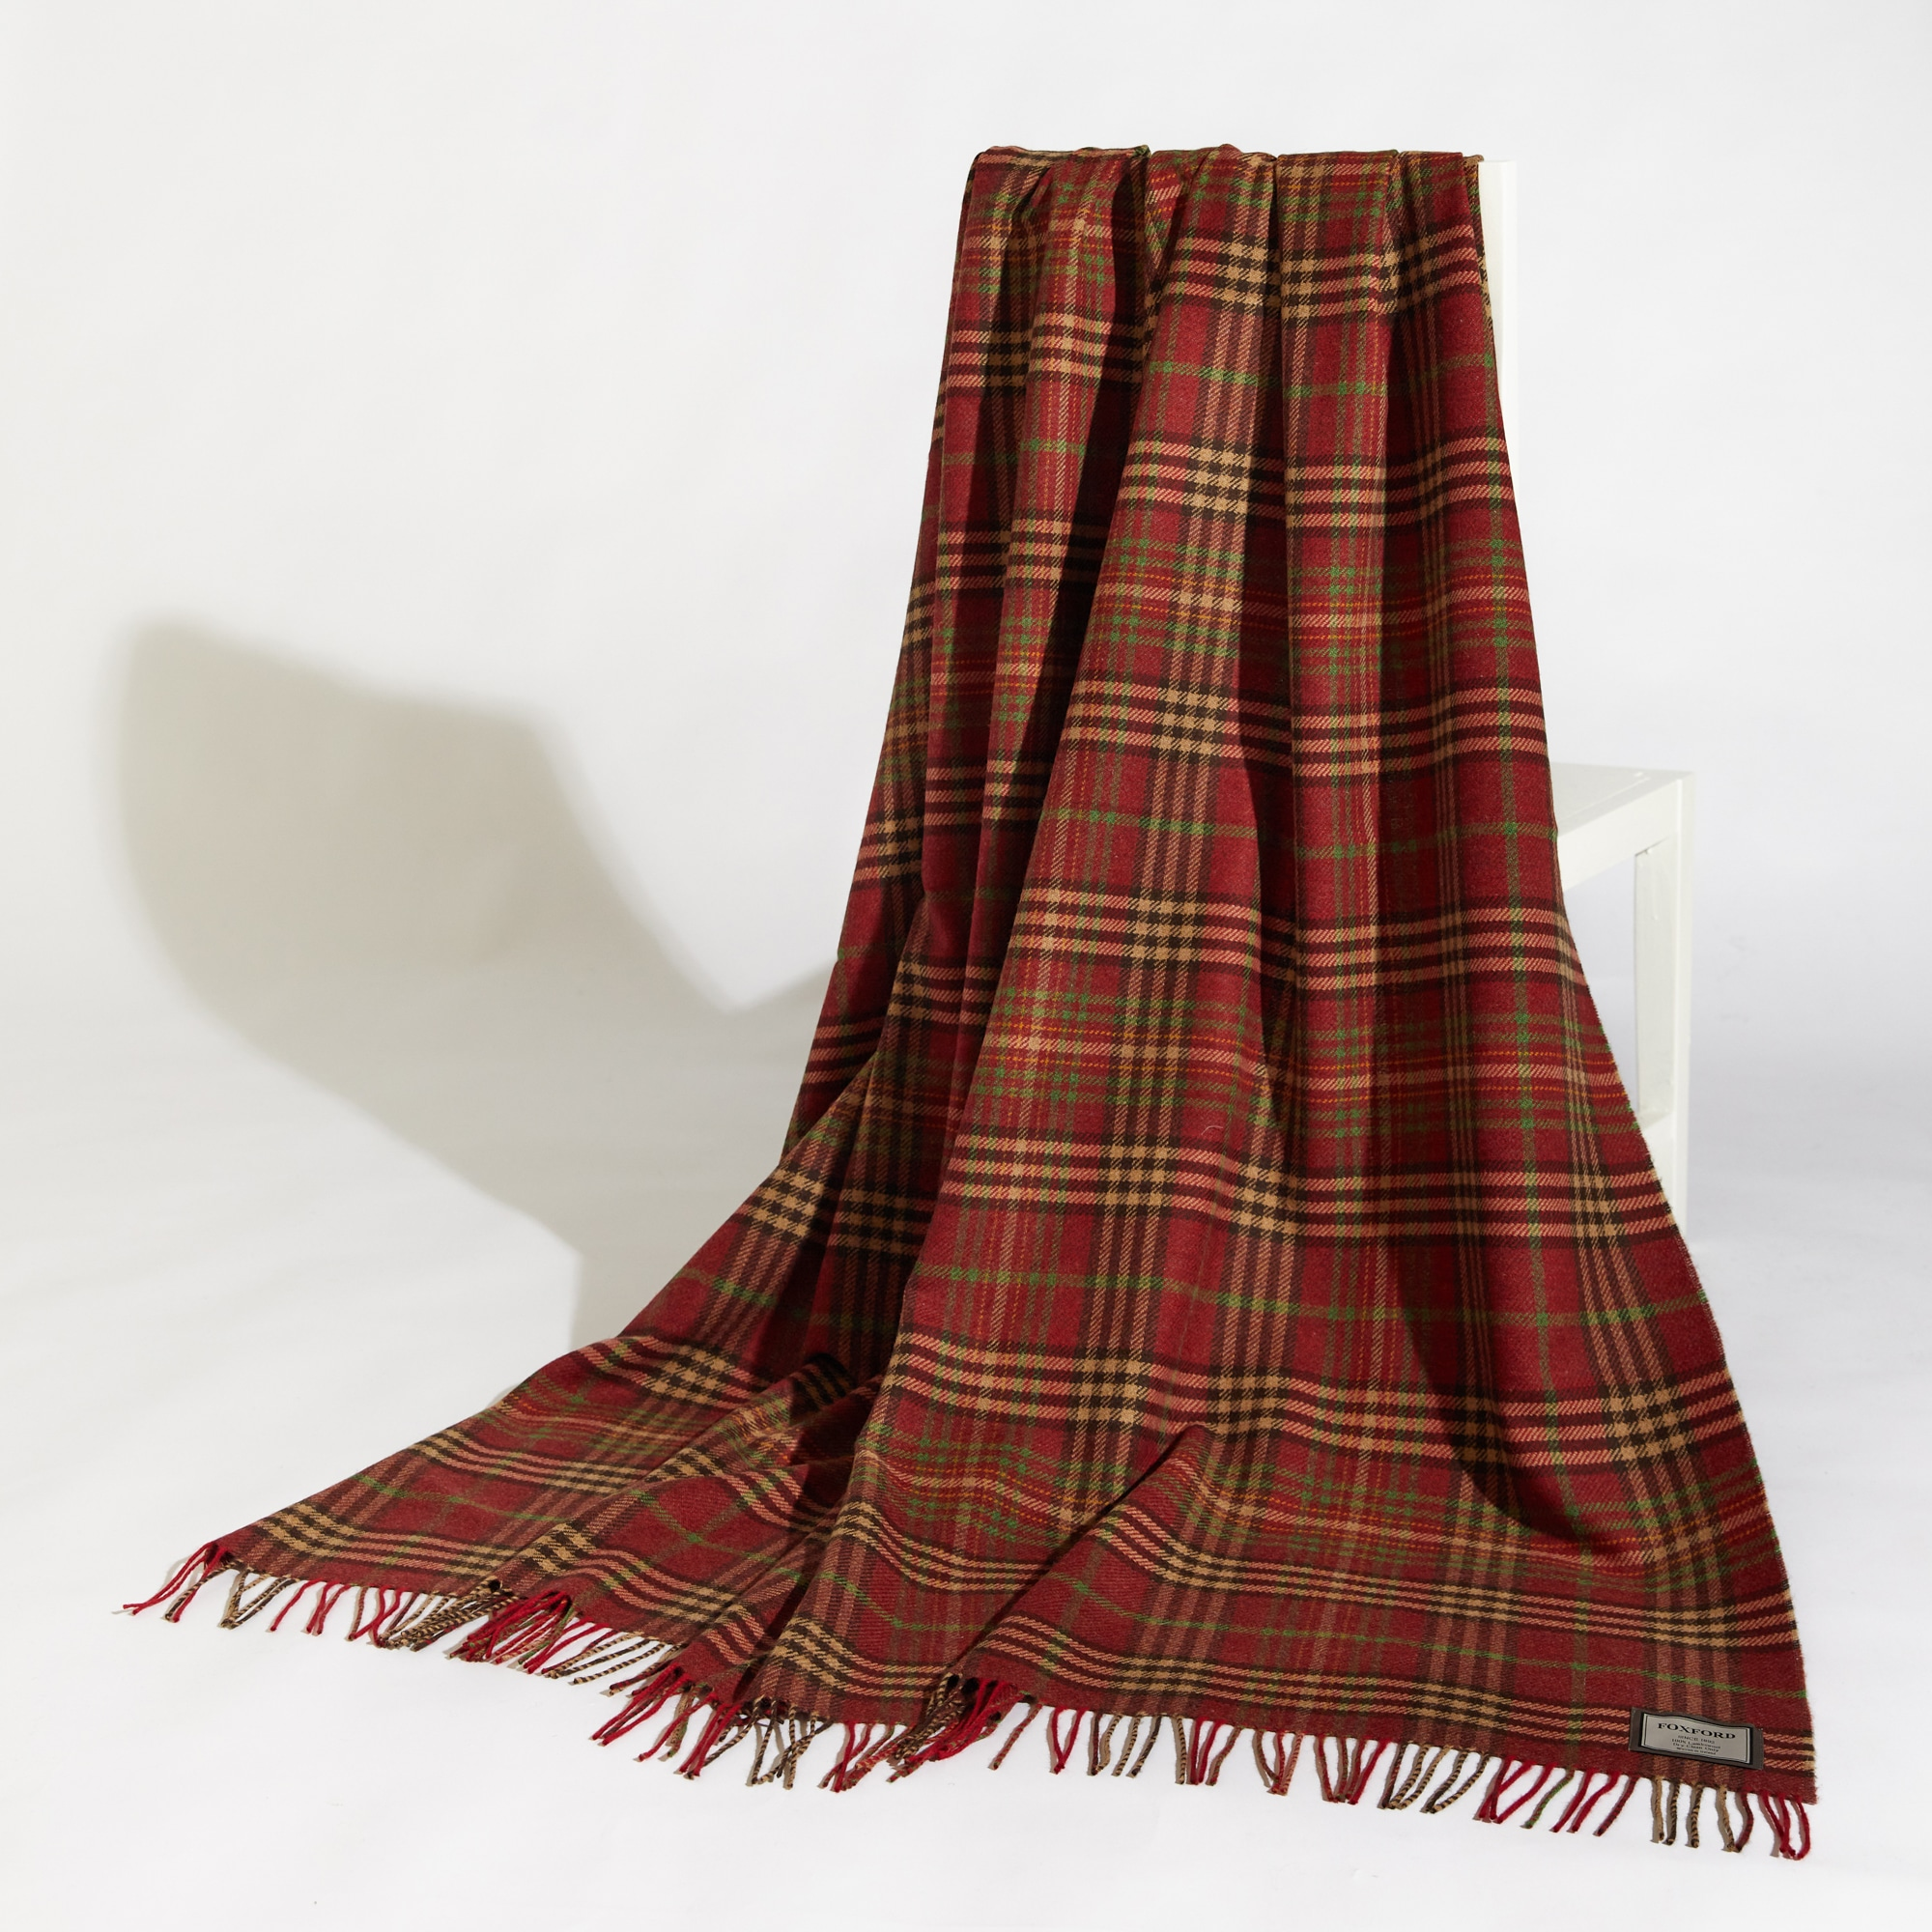 The Yew Throw